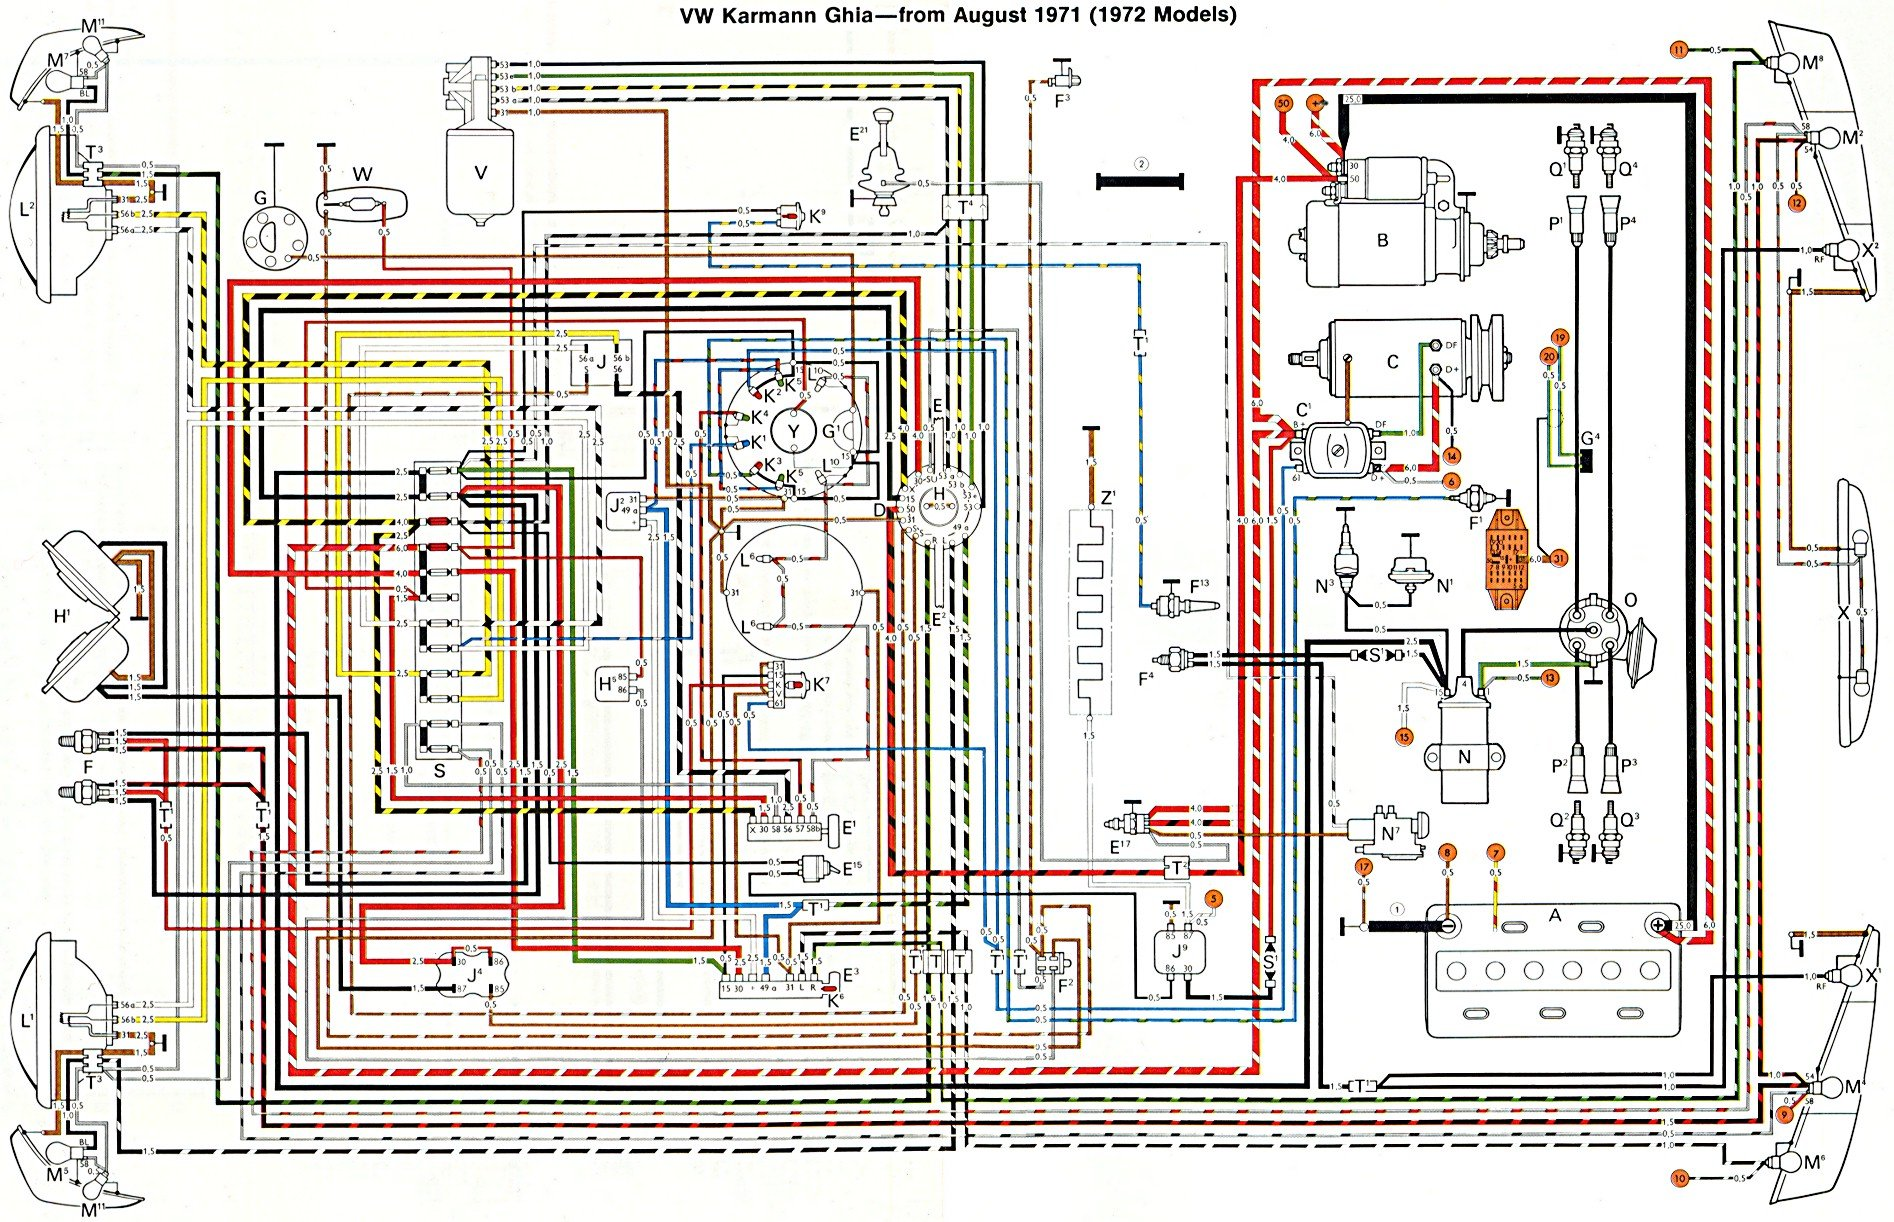 1964 Volkswagen Karmann Ghia Wiring Diagram Library Ignition